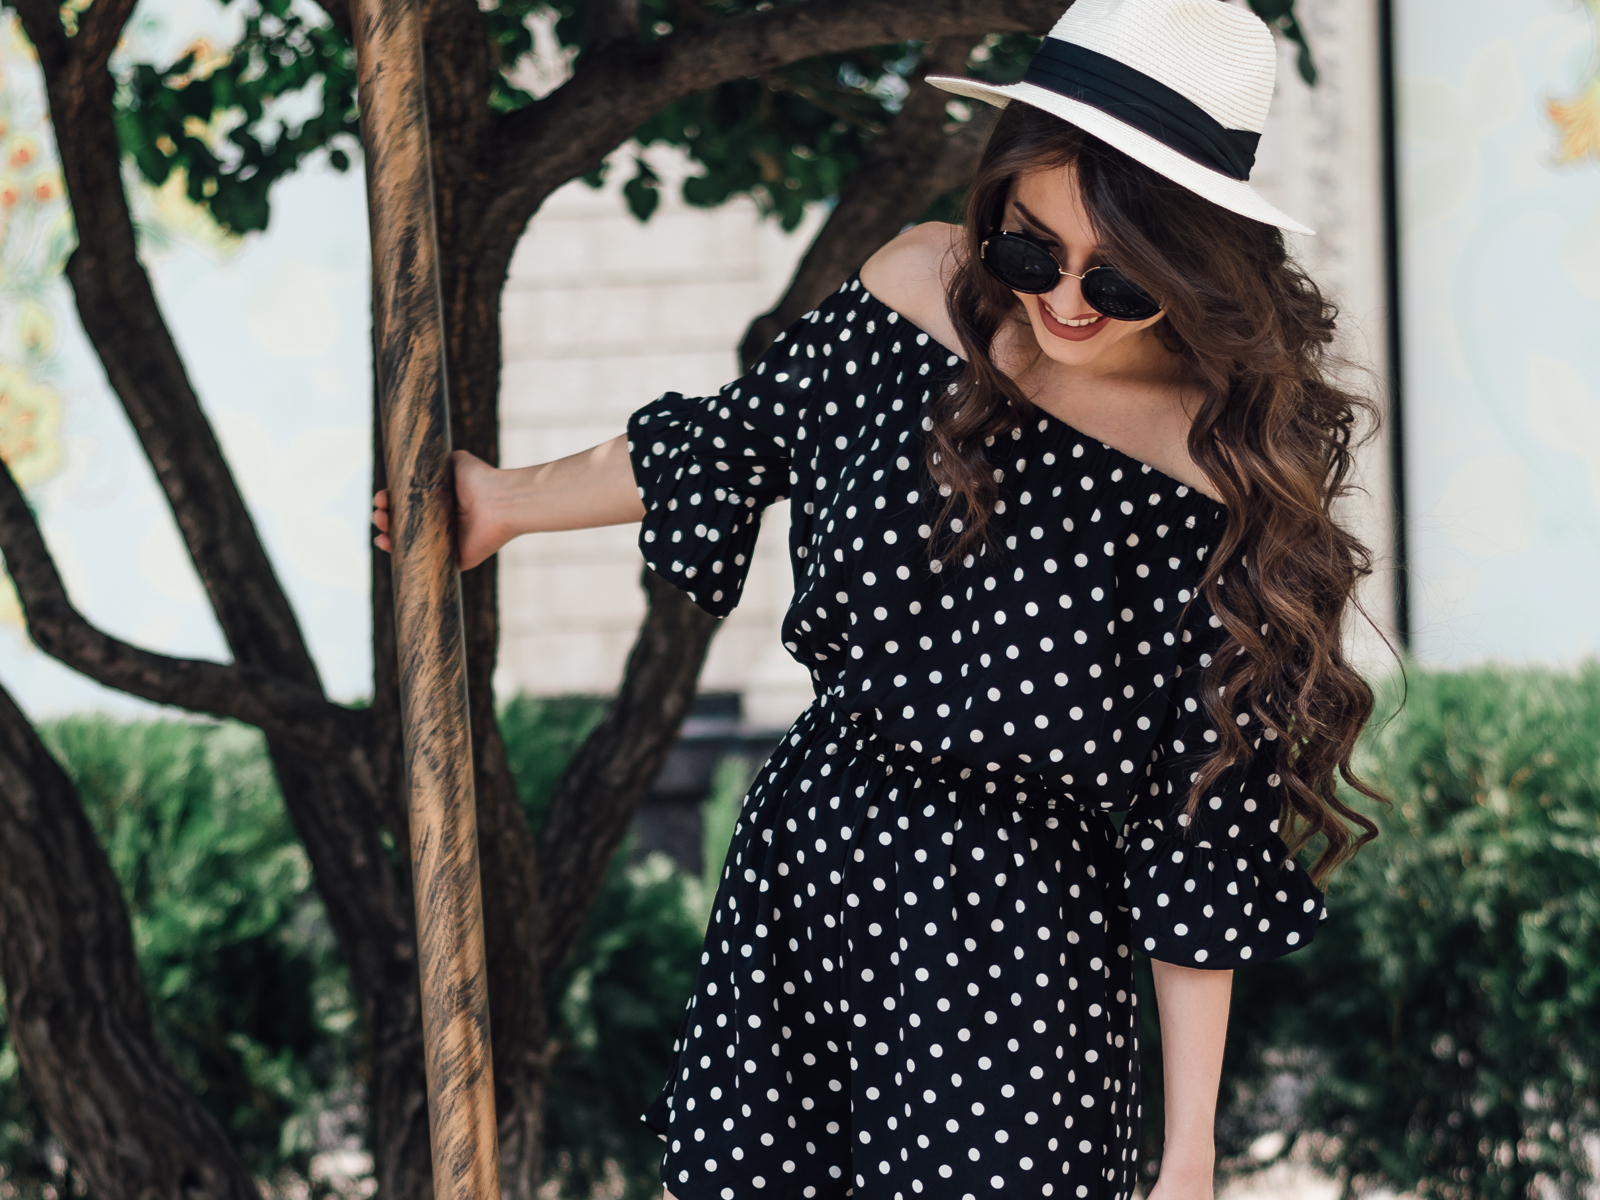 fashion blogger diyorasnotes diyora beta polka dot romper white sneakers asos straw hat backpack new look casual outfit